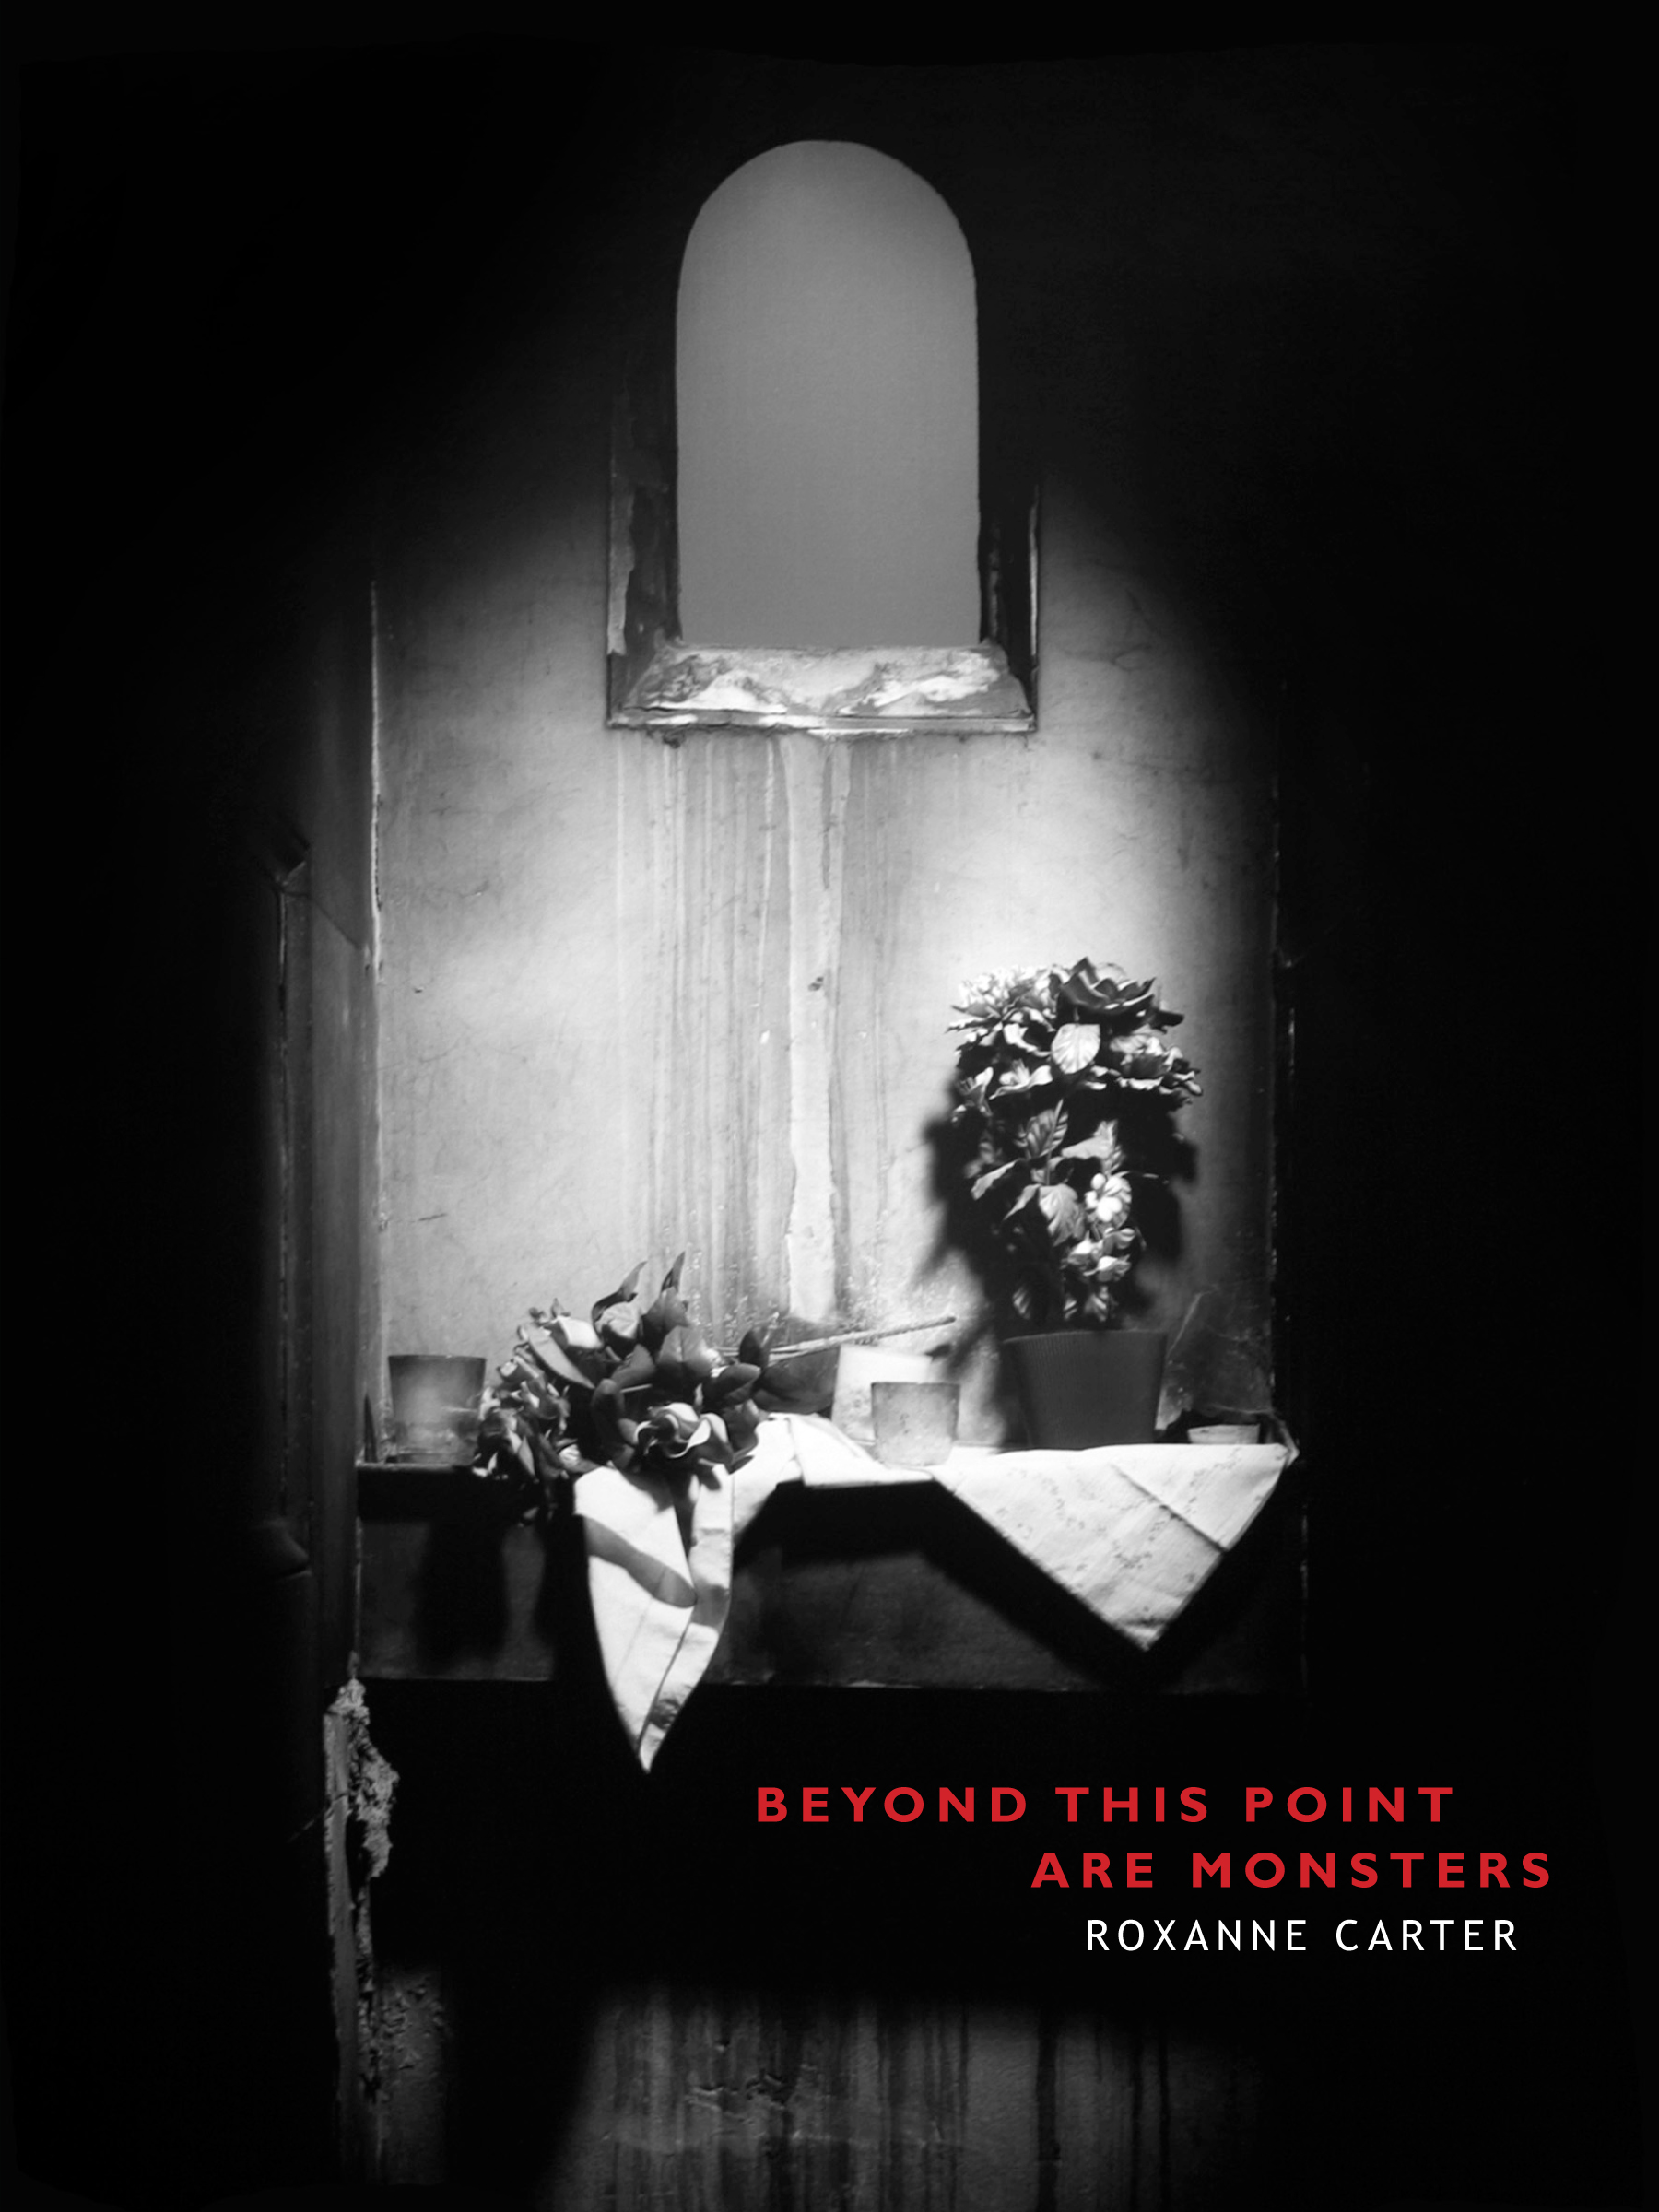 Beyond This Point Are Monsters by Roxanne Carter